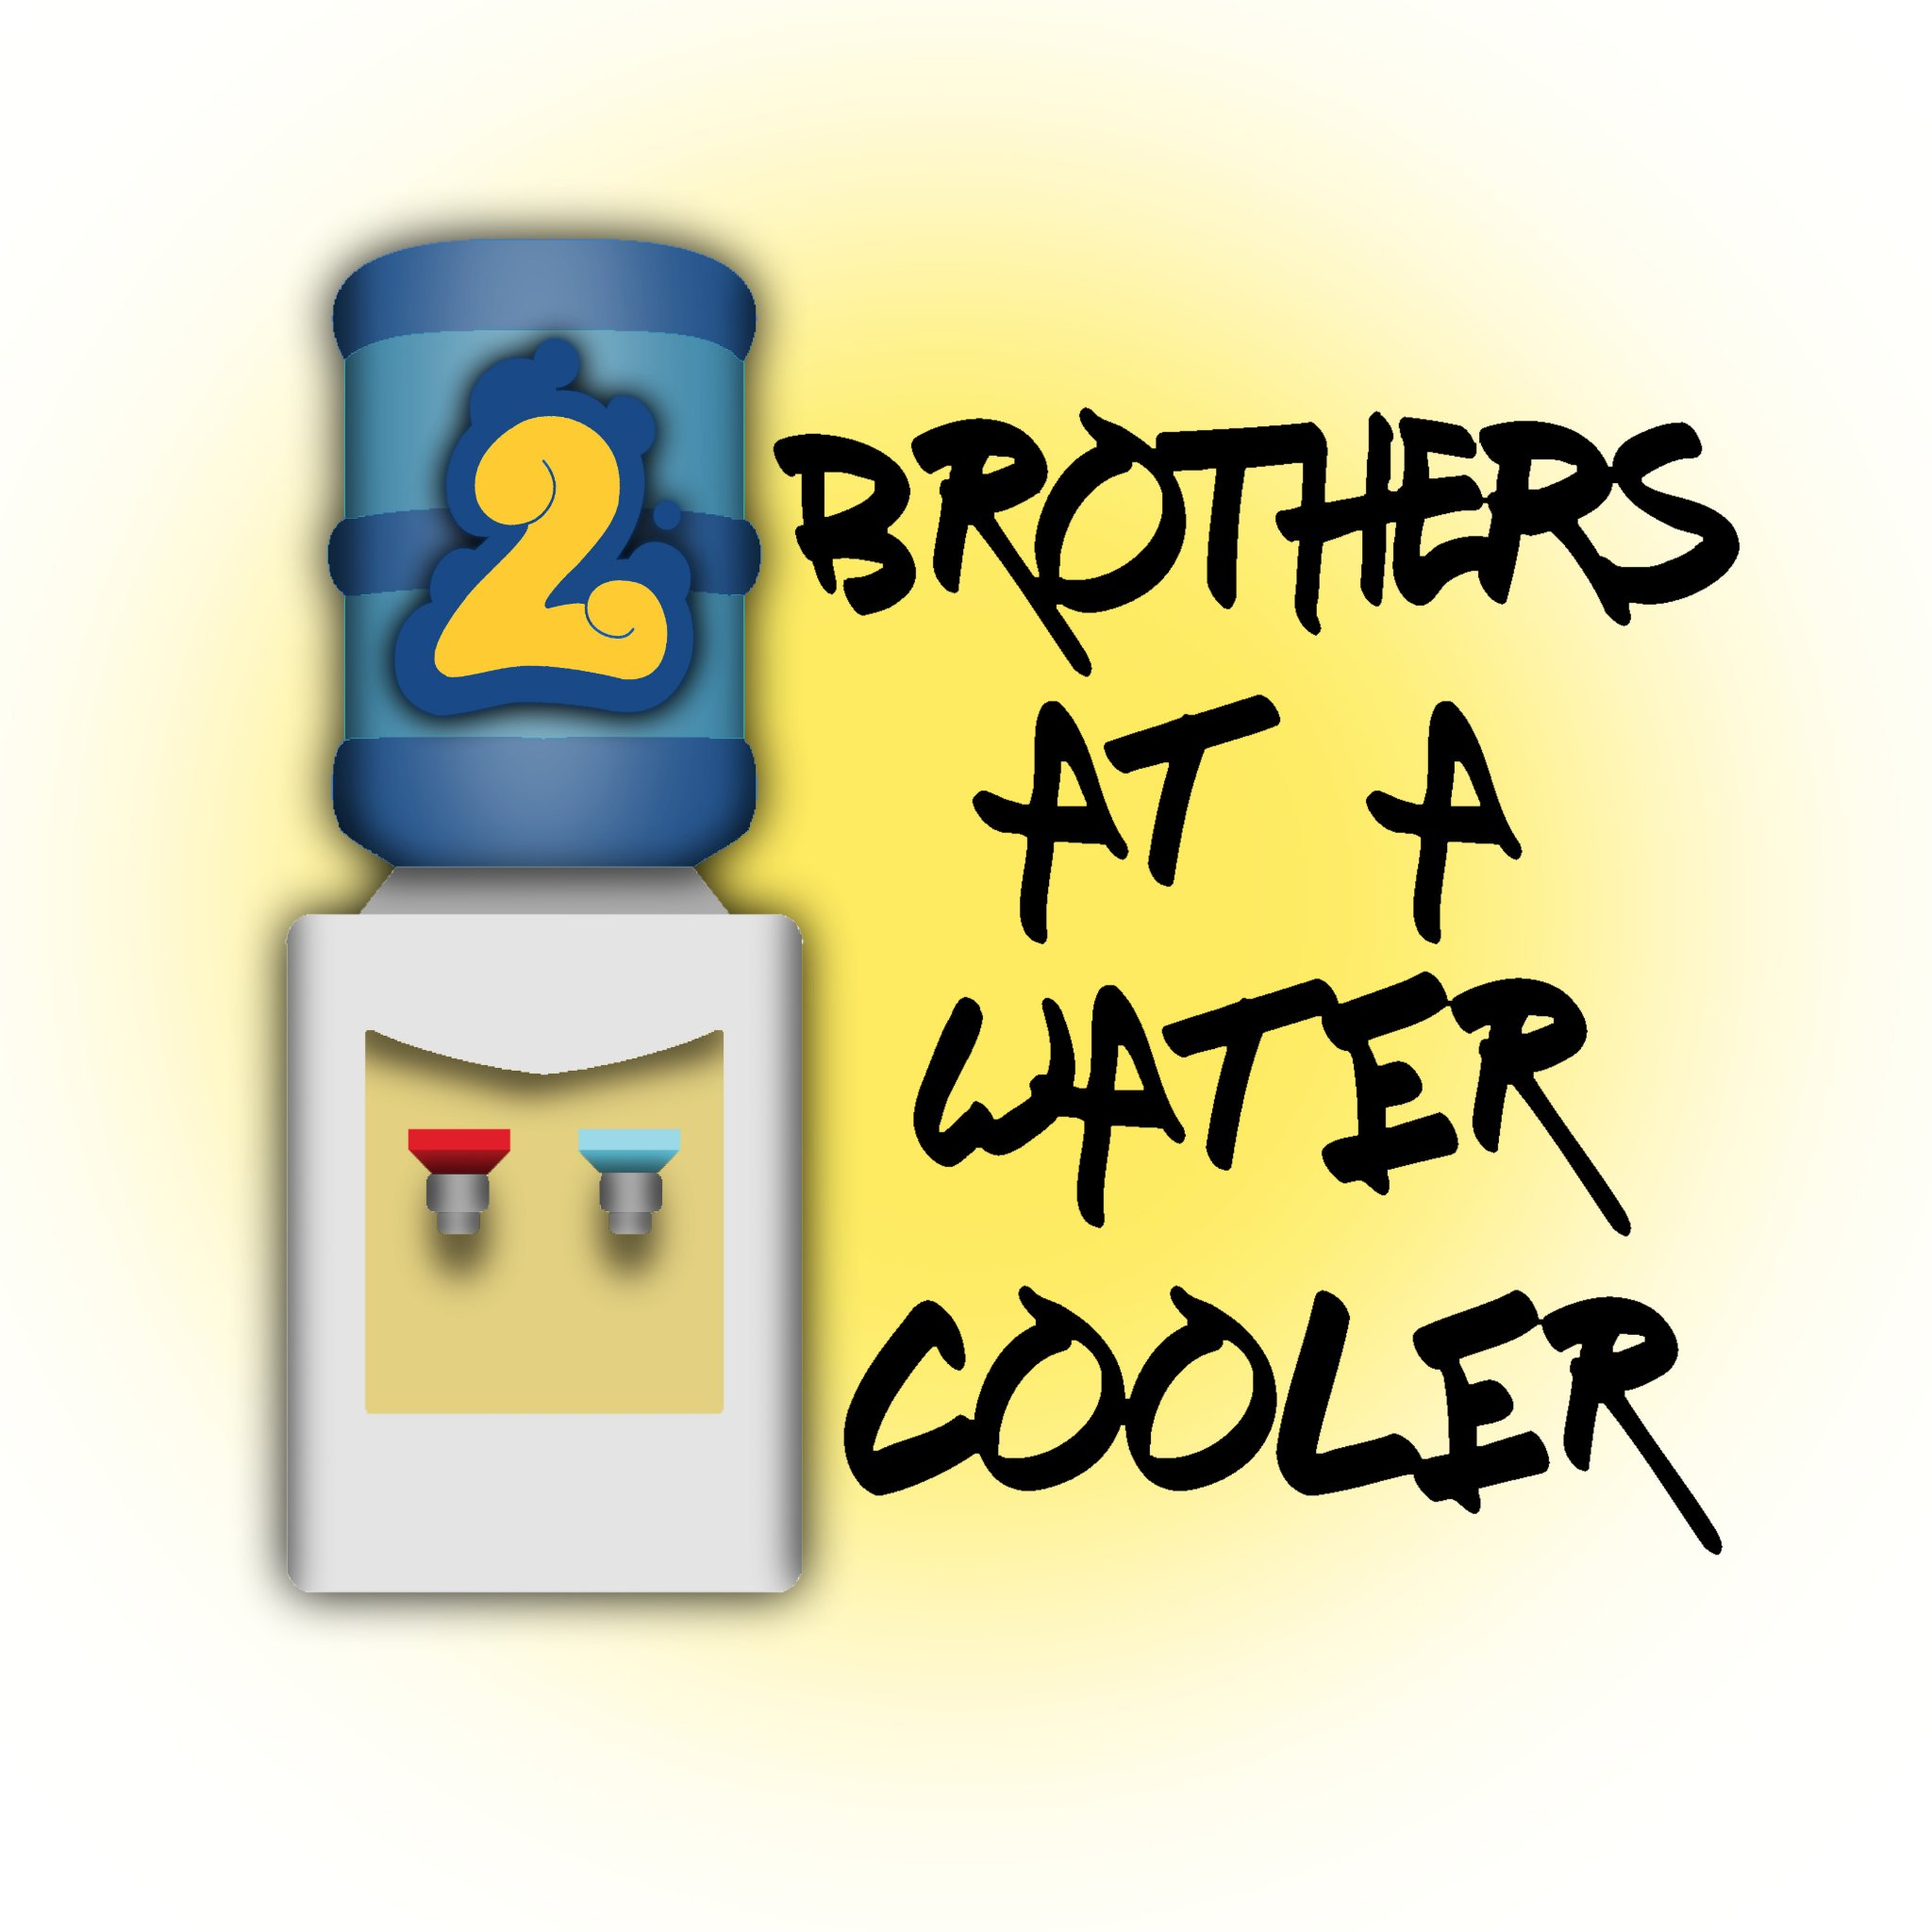 2 Brothers At A Water Cooler